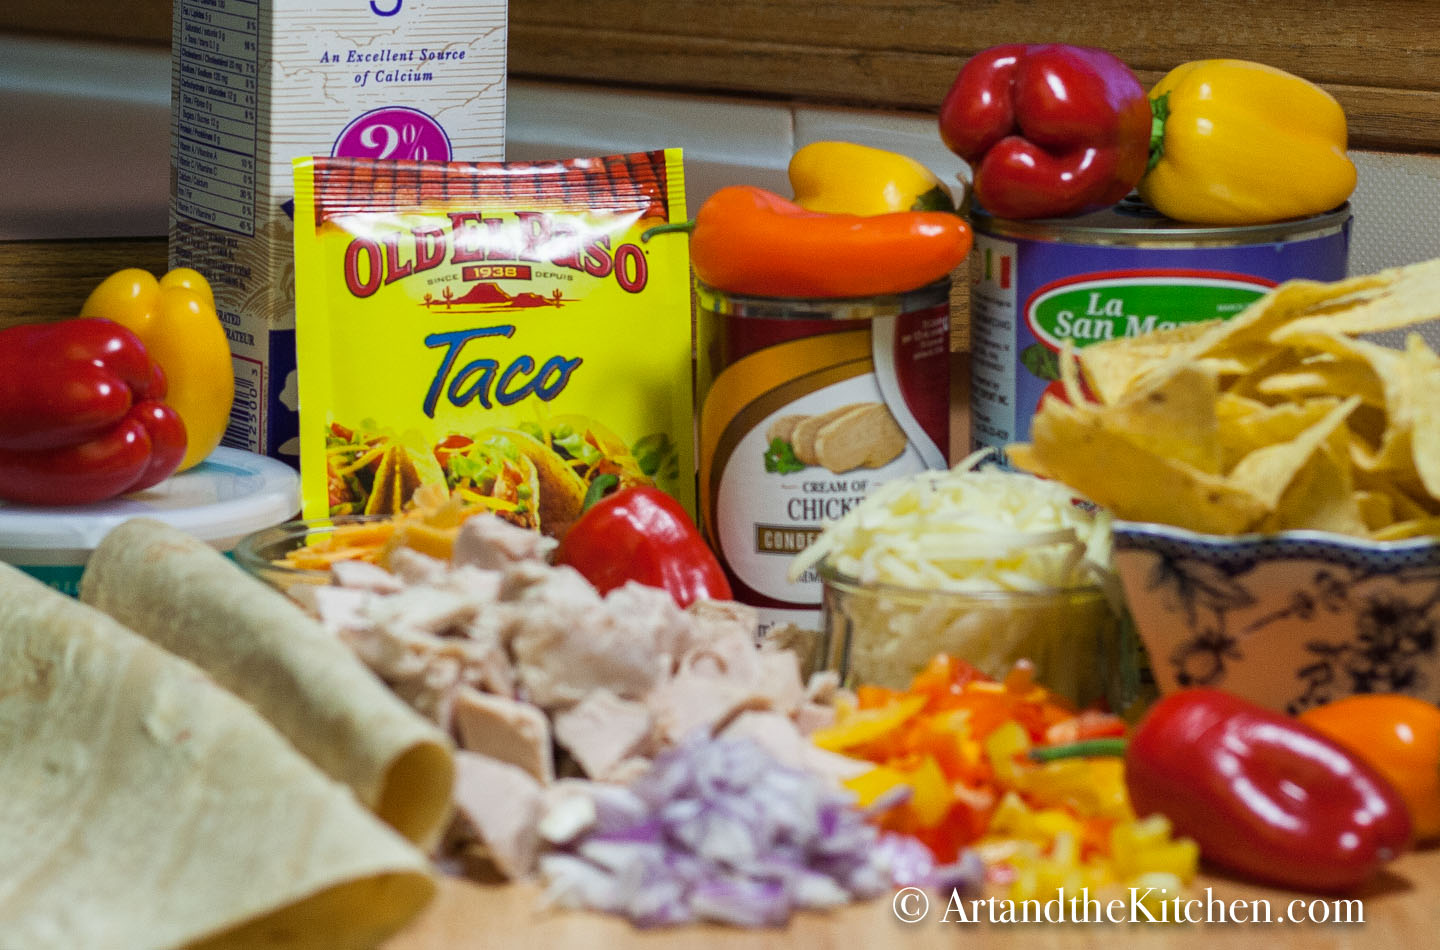 Ingredients for making Mexican turkey casserole. Chopped vegetables, tortillas , spice mix and more.